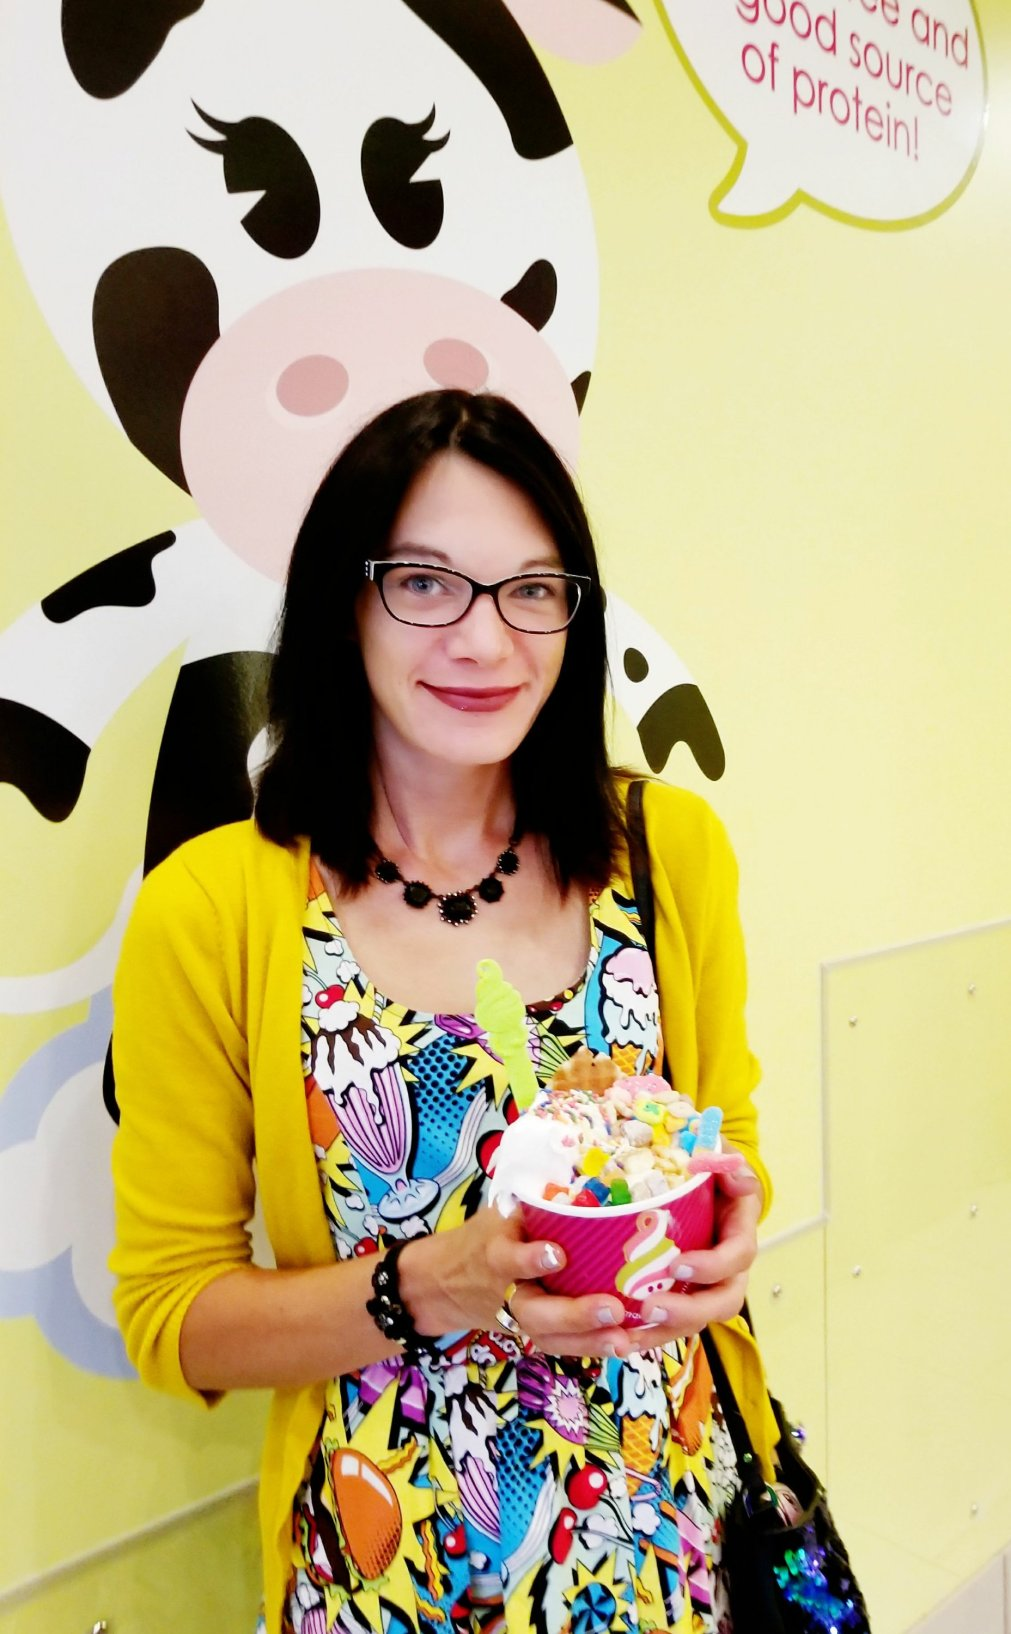 Give It A Whirl Girl with her Menchie's Froyo Creation